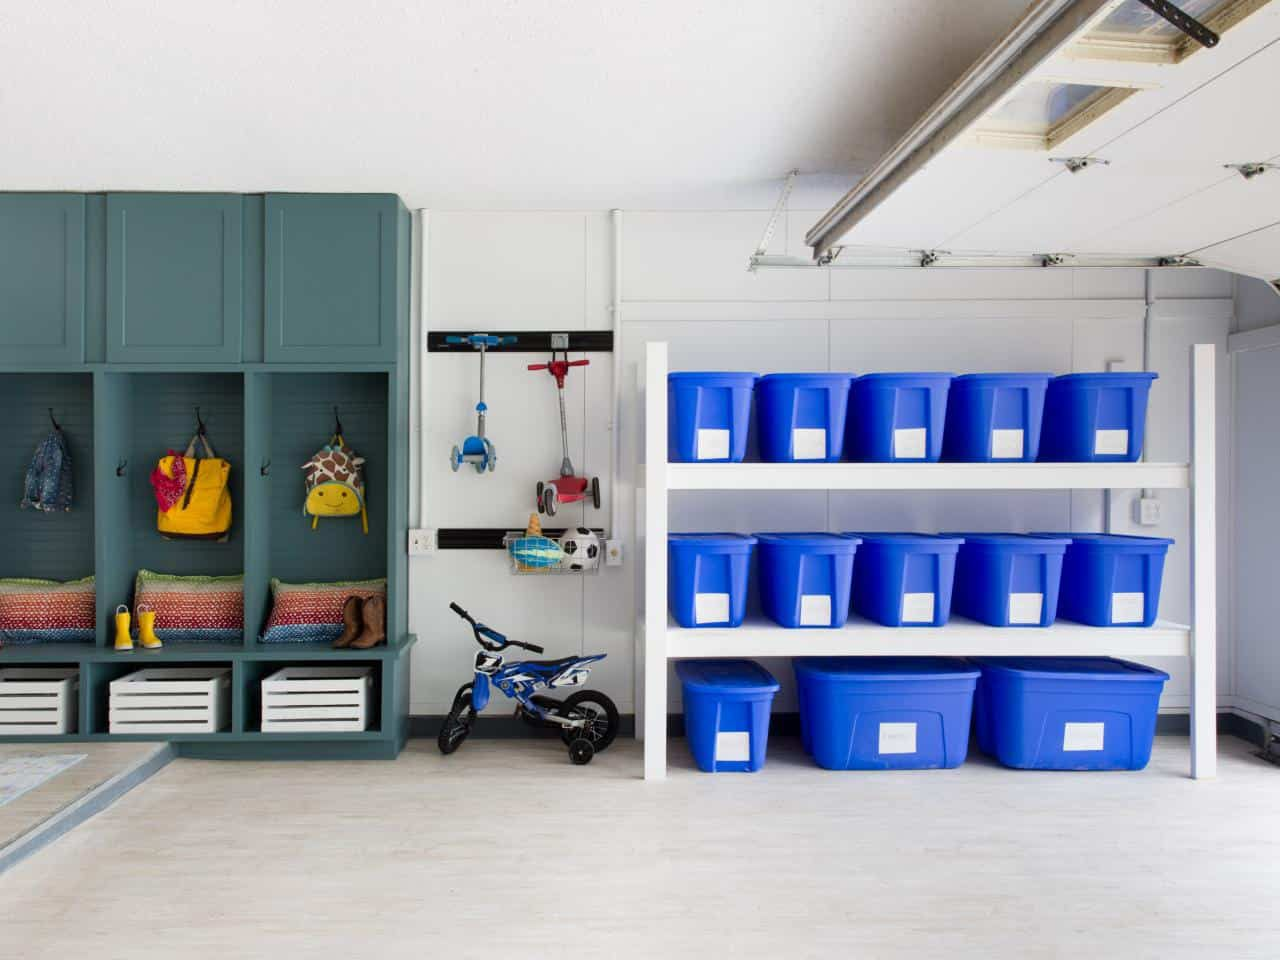 Dining Room Storage Ideas To Keep Your Scheme Clutter Free: Eight Useful Ways To Organize Your Garage For A Clutter